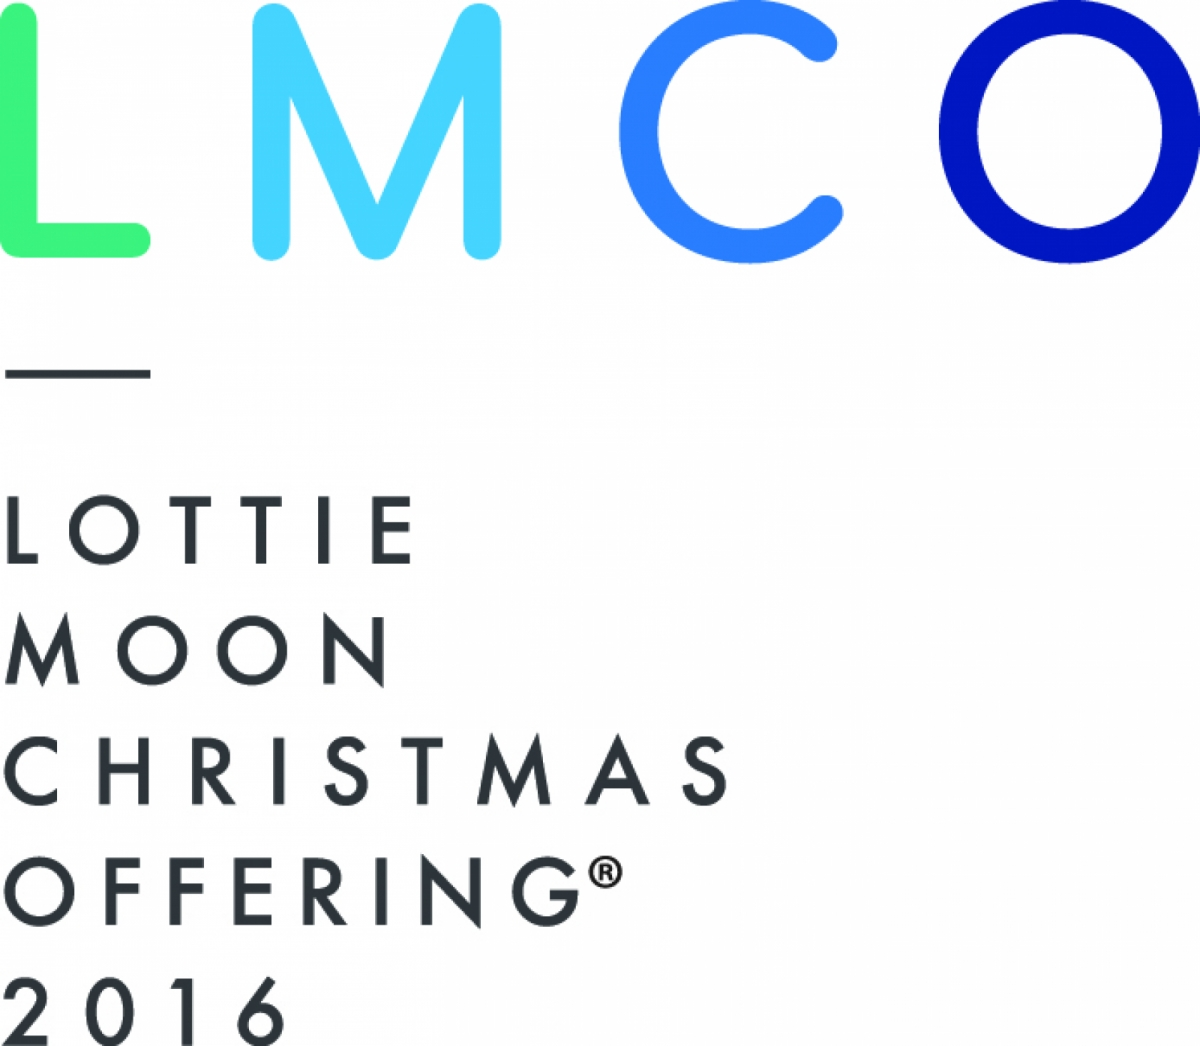 Lottie Moon Christmas Offering 2019.2016 Lottie Moon Offering Closes At 153 Million Scbo Org